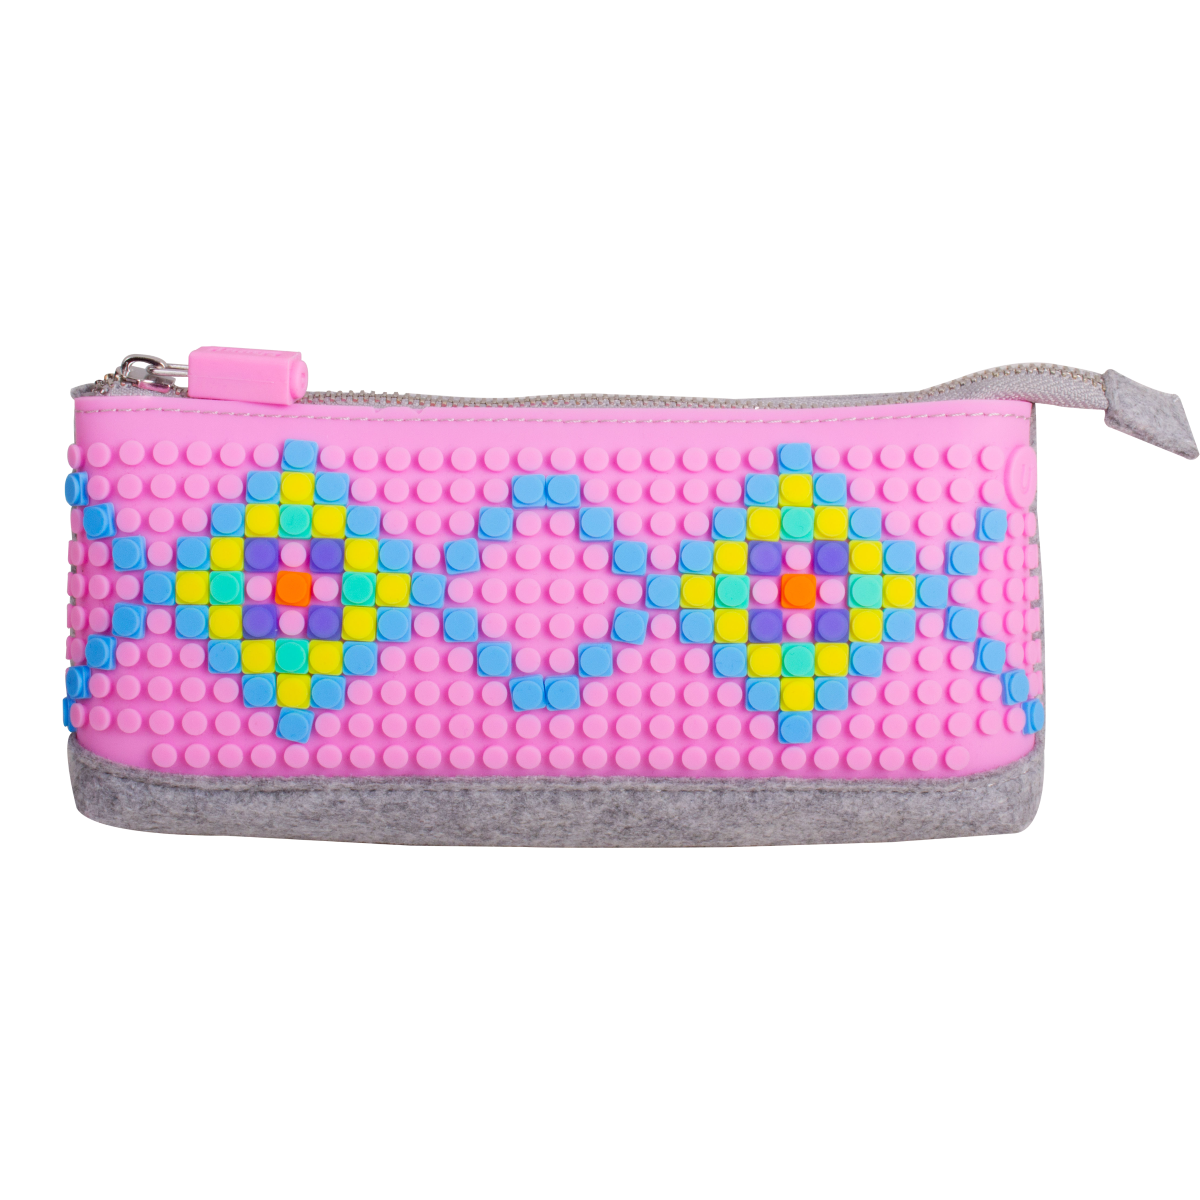 UPixel Pencil Case - Turkiz/Fuschia